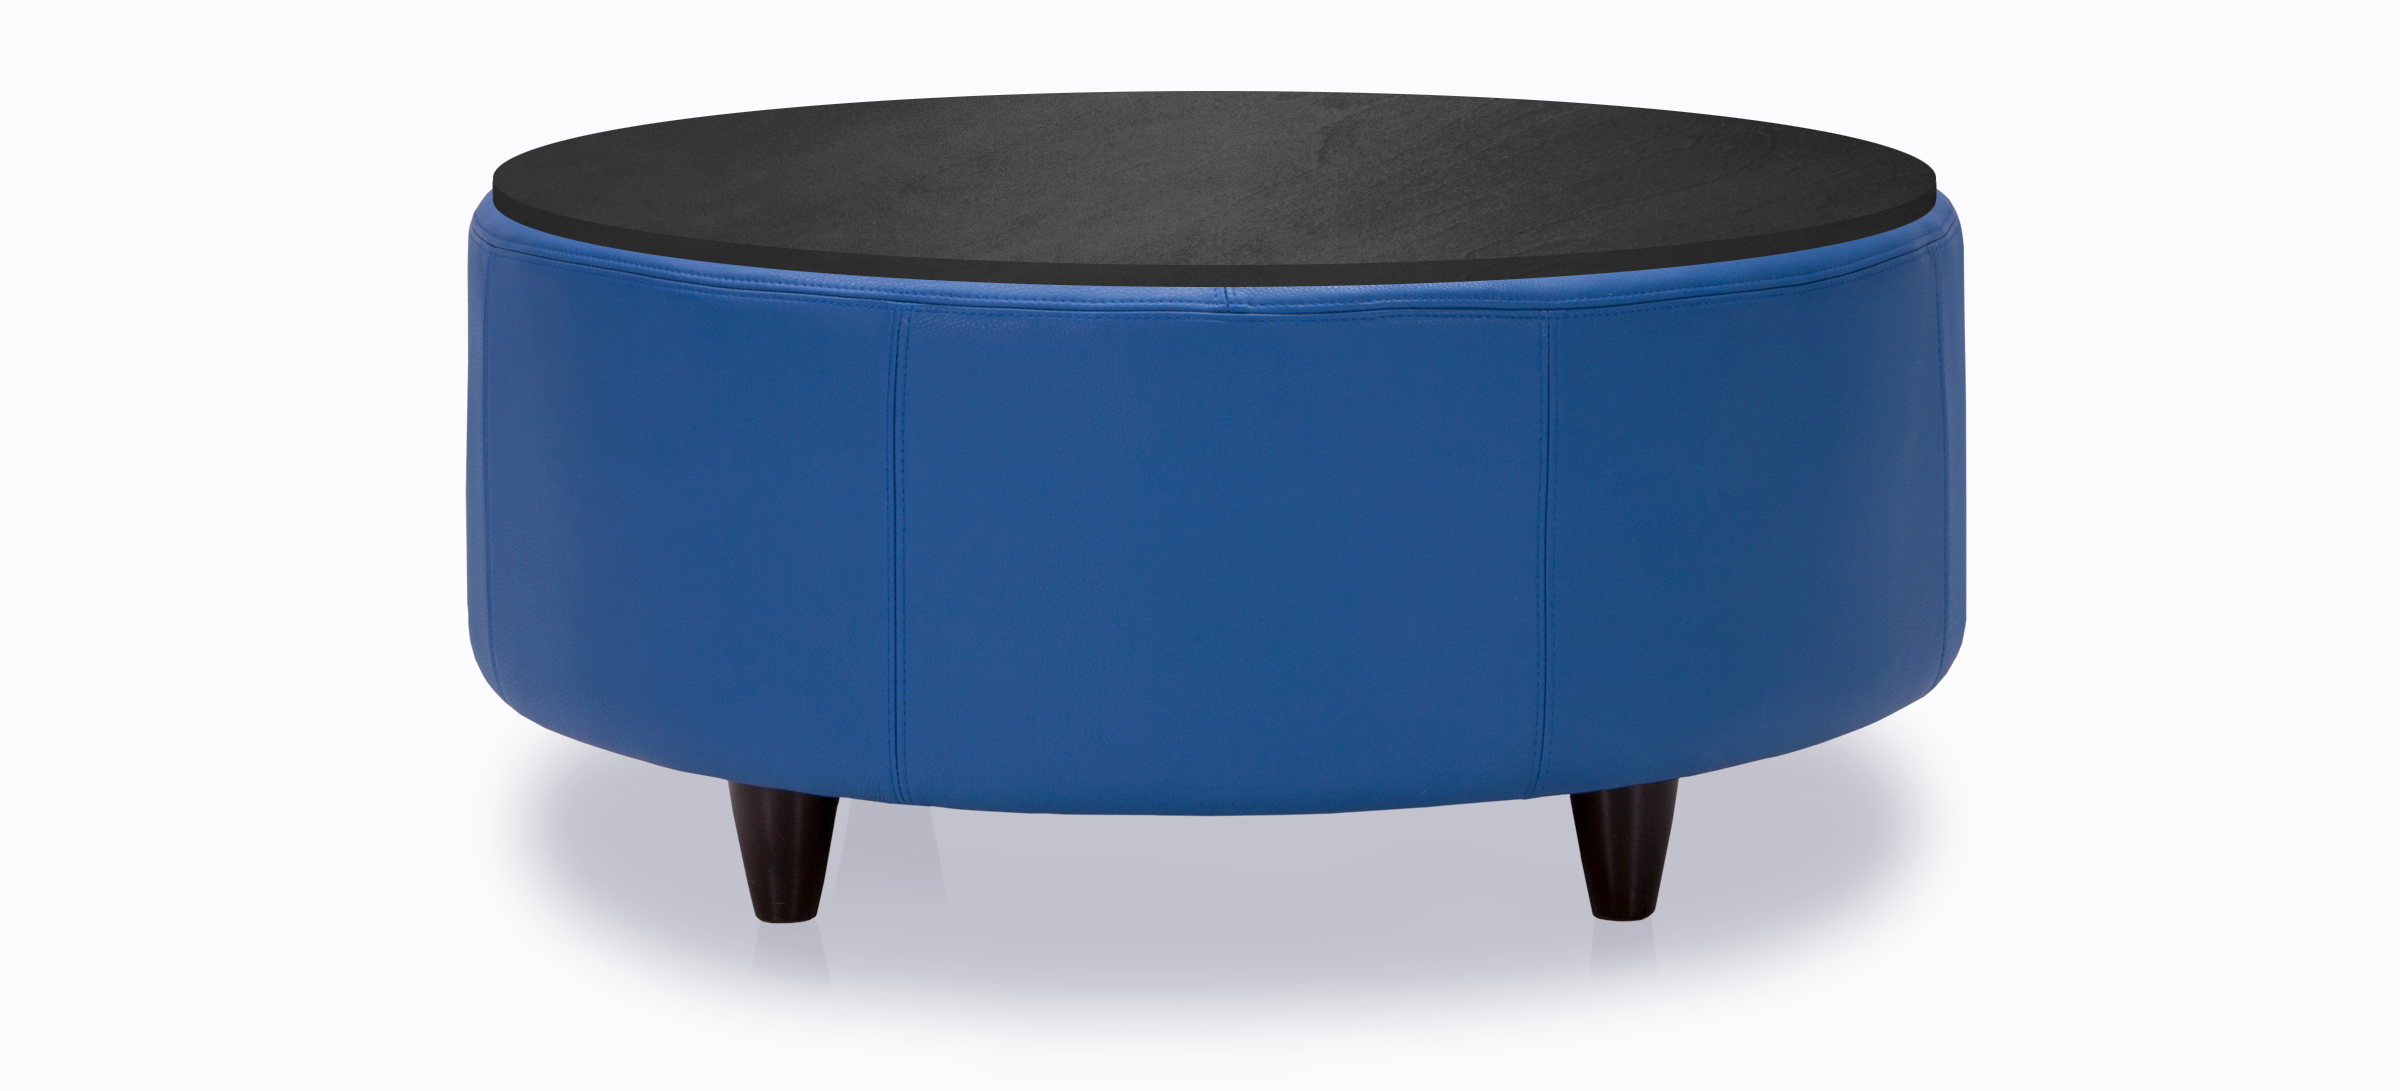 Ottoman Jelly Beans – Modern Style – Cameleon Collection Throughout Most Popular Jelly Bean Coffee Tables (View 15 of 20)